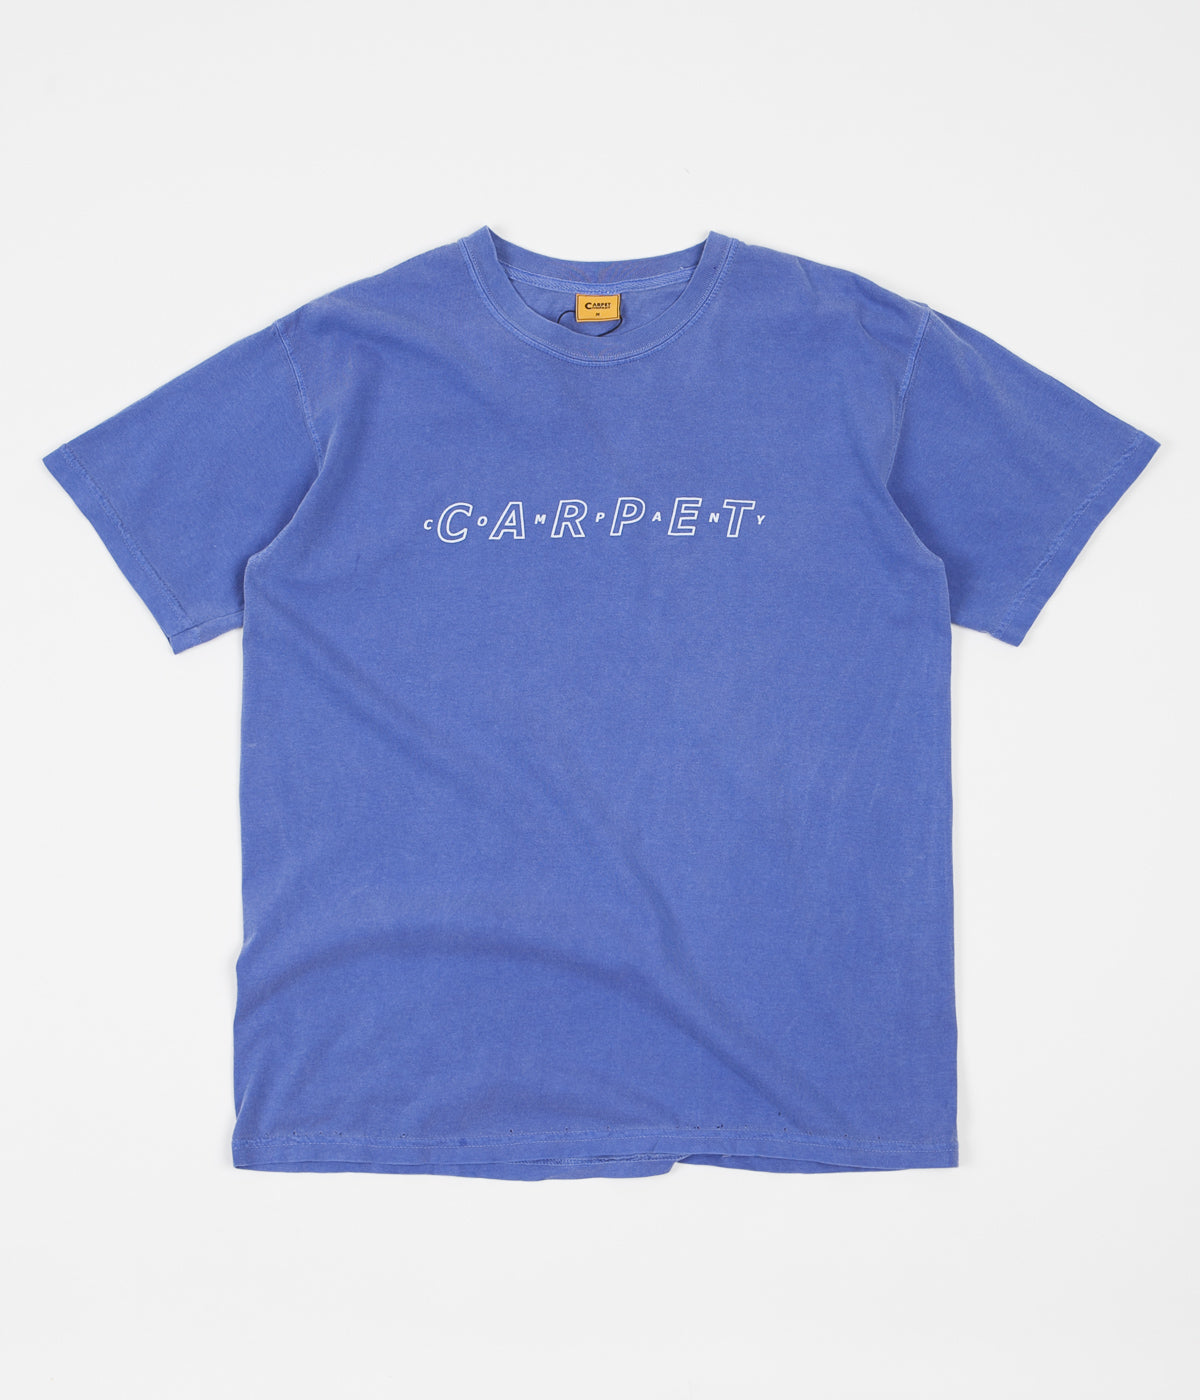 Carpet Co. Pigment Dyed Puff Ink T-Shirt - Mystic